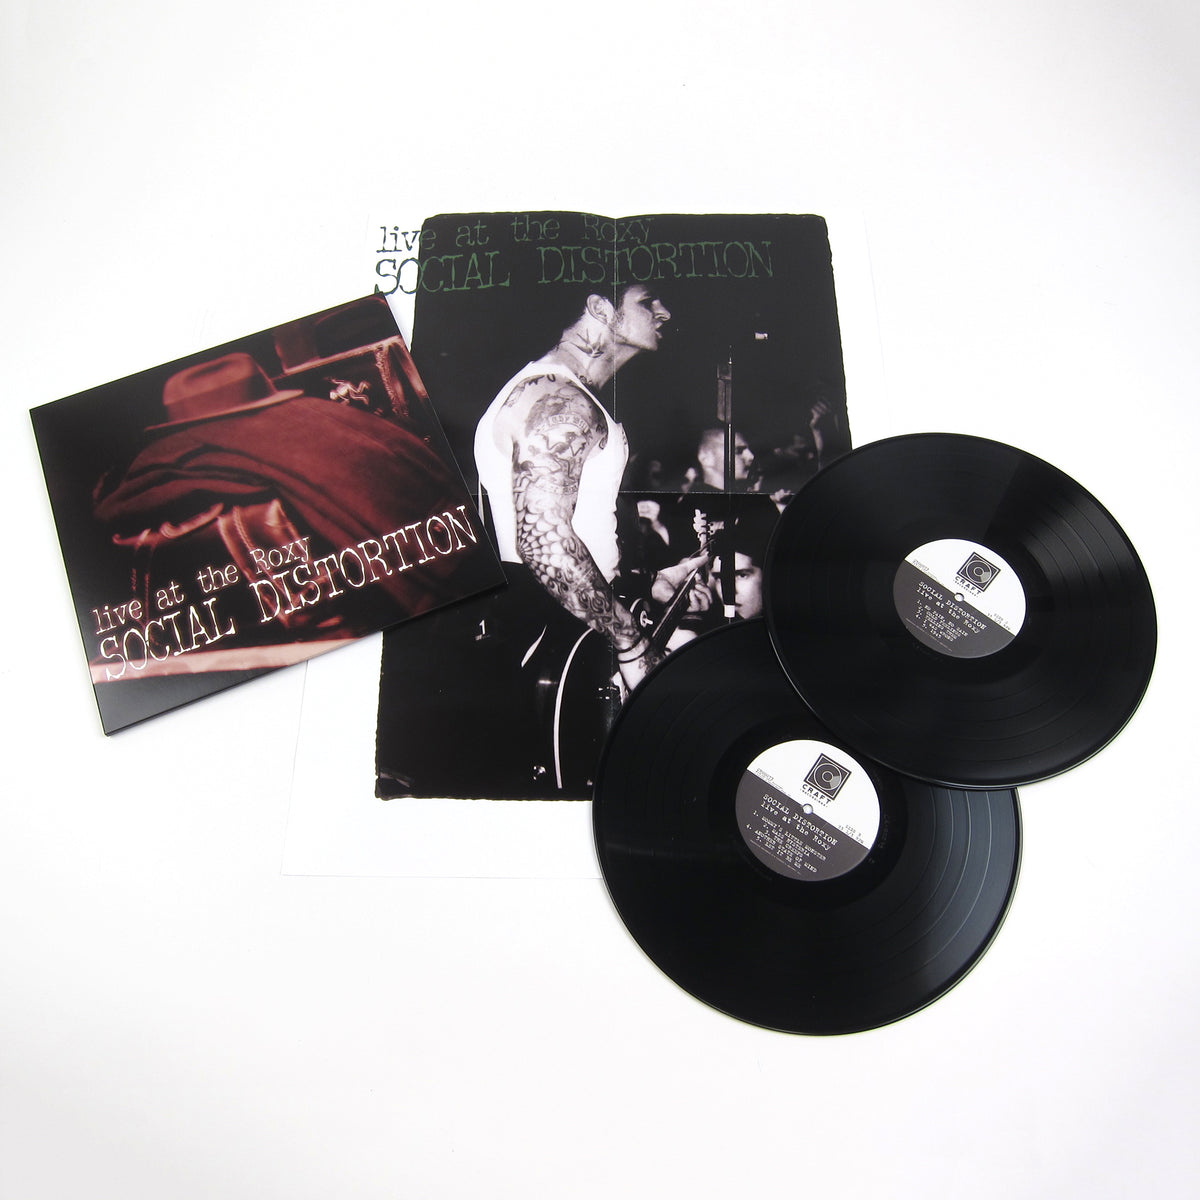 Social Distortion: Live At The Roxy Vinyl 2LP